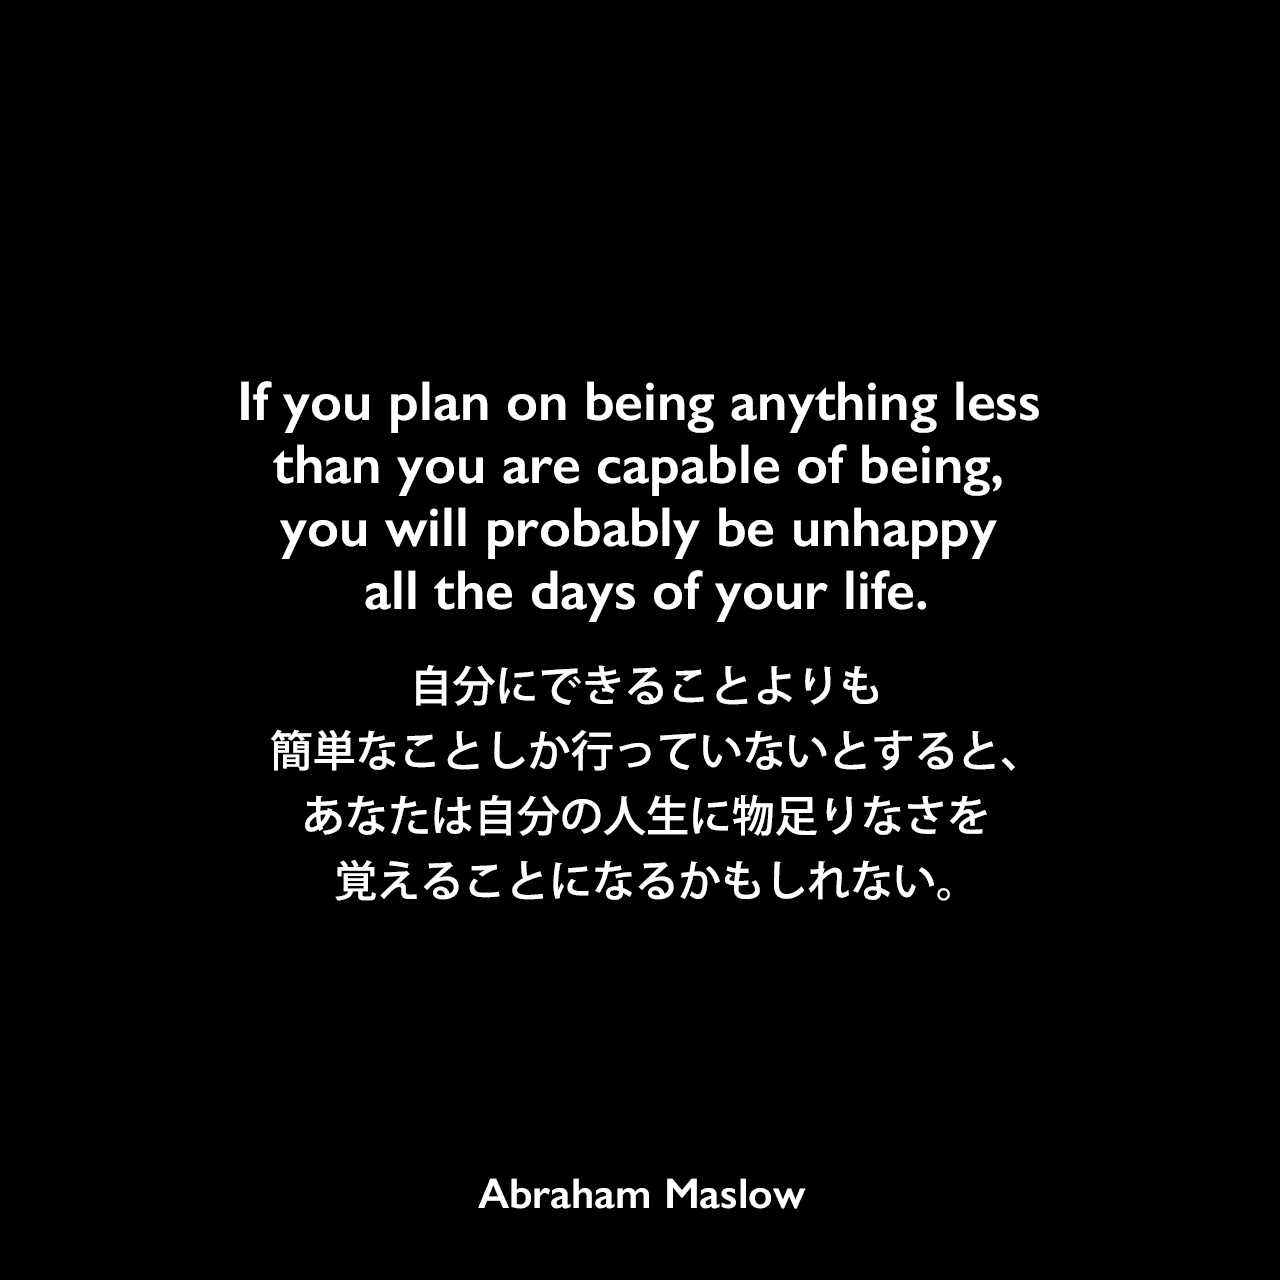 If you plan on being anything less than you are capable of being, you will probably be unhappy all the days of your life.自分にできることよりも簡単なことしか行っていないとすると、あなたは自分の人生に物足りなさを覚えることになるかもしれない。Abraham Maslow